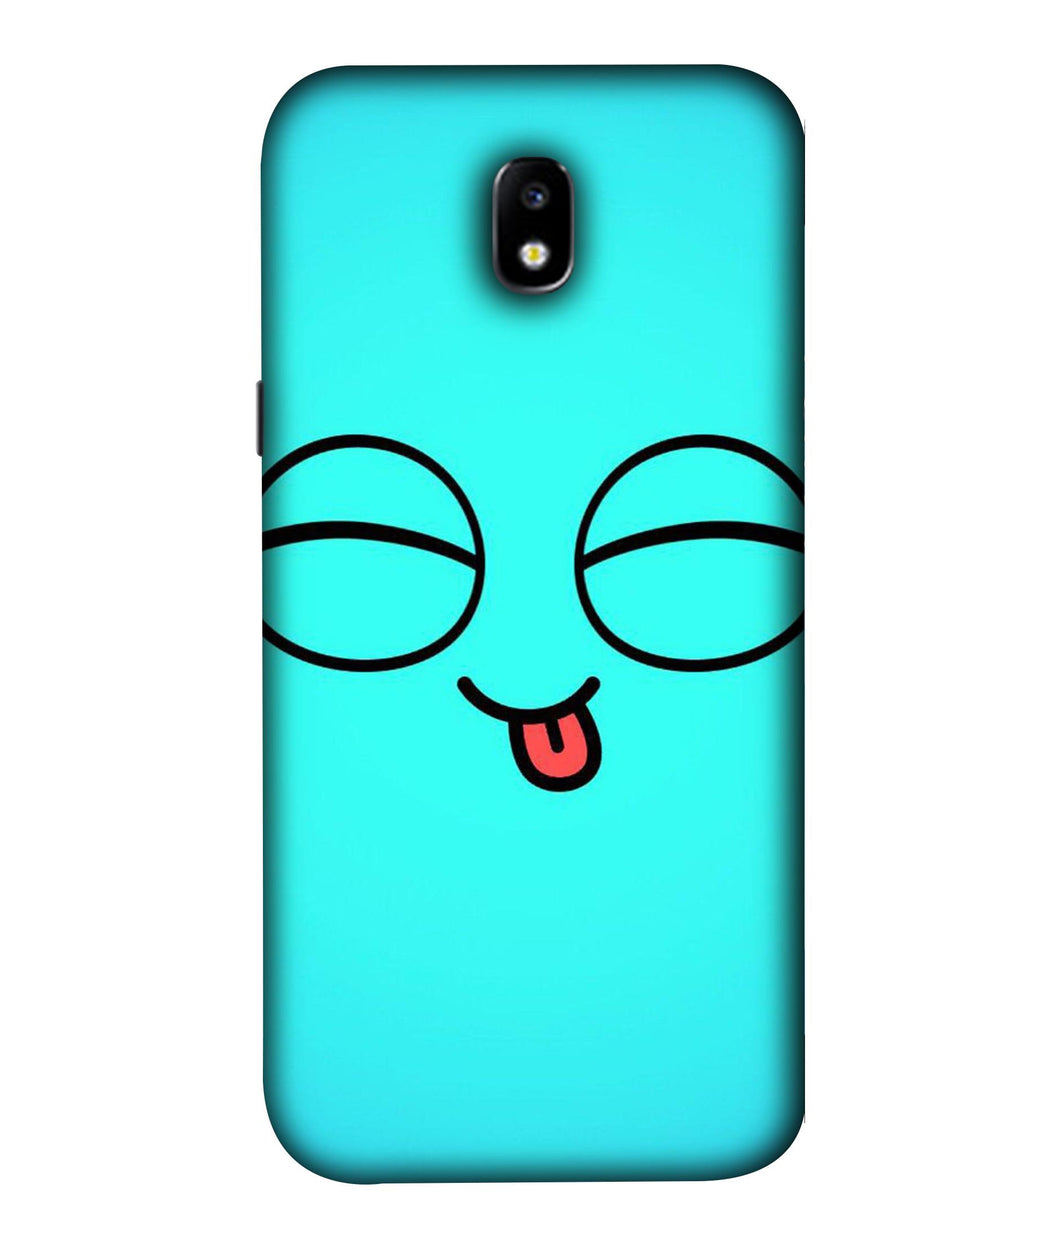 Samsung Galaxy J7 Pro Cute Mobile cover